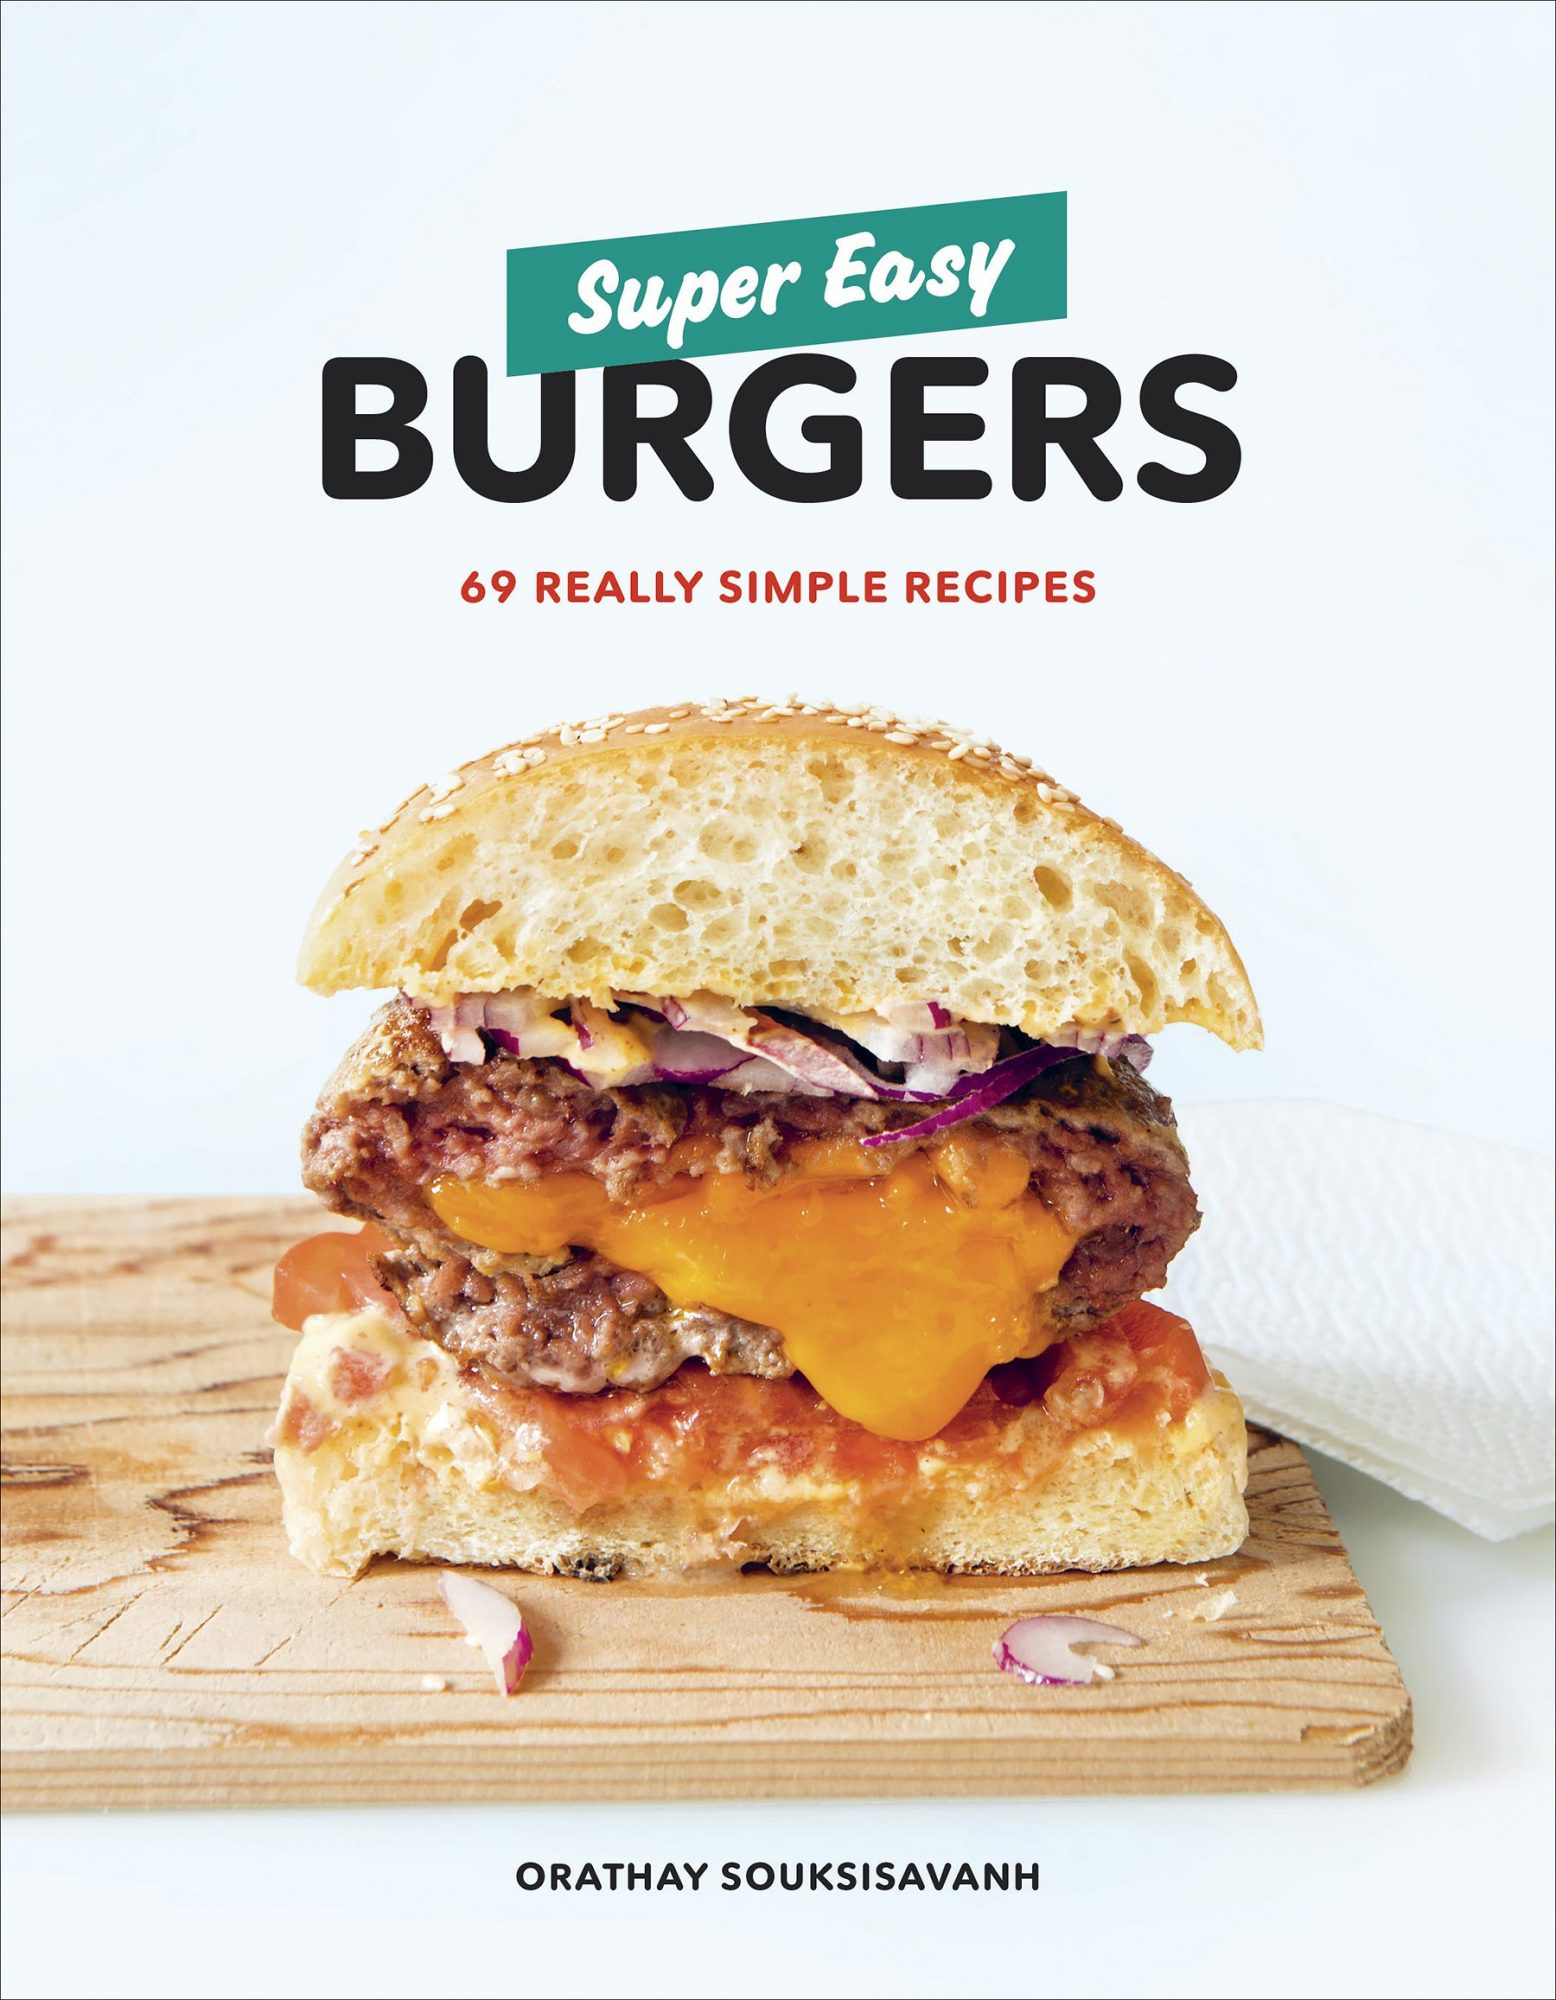 Super Easy Burgers, by Orathay Souksisavanh